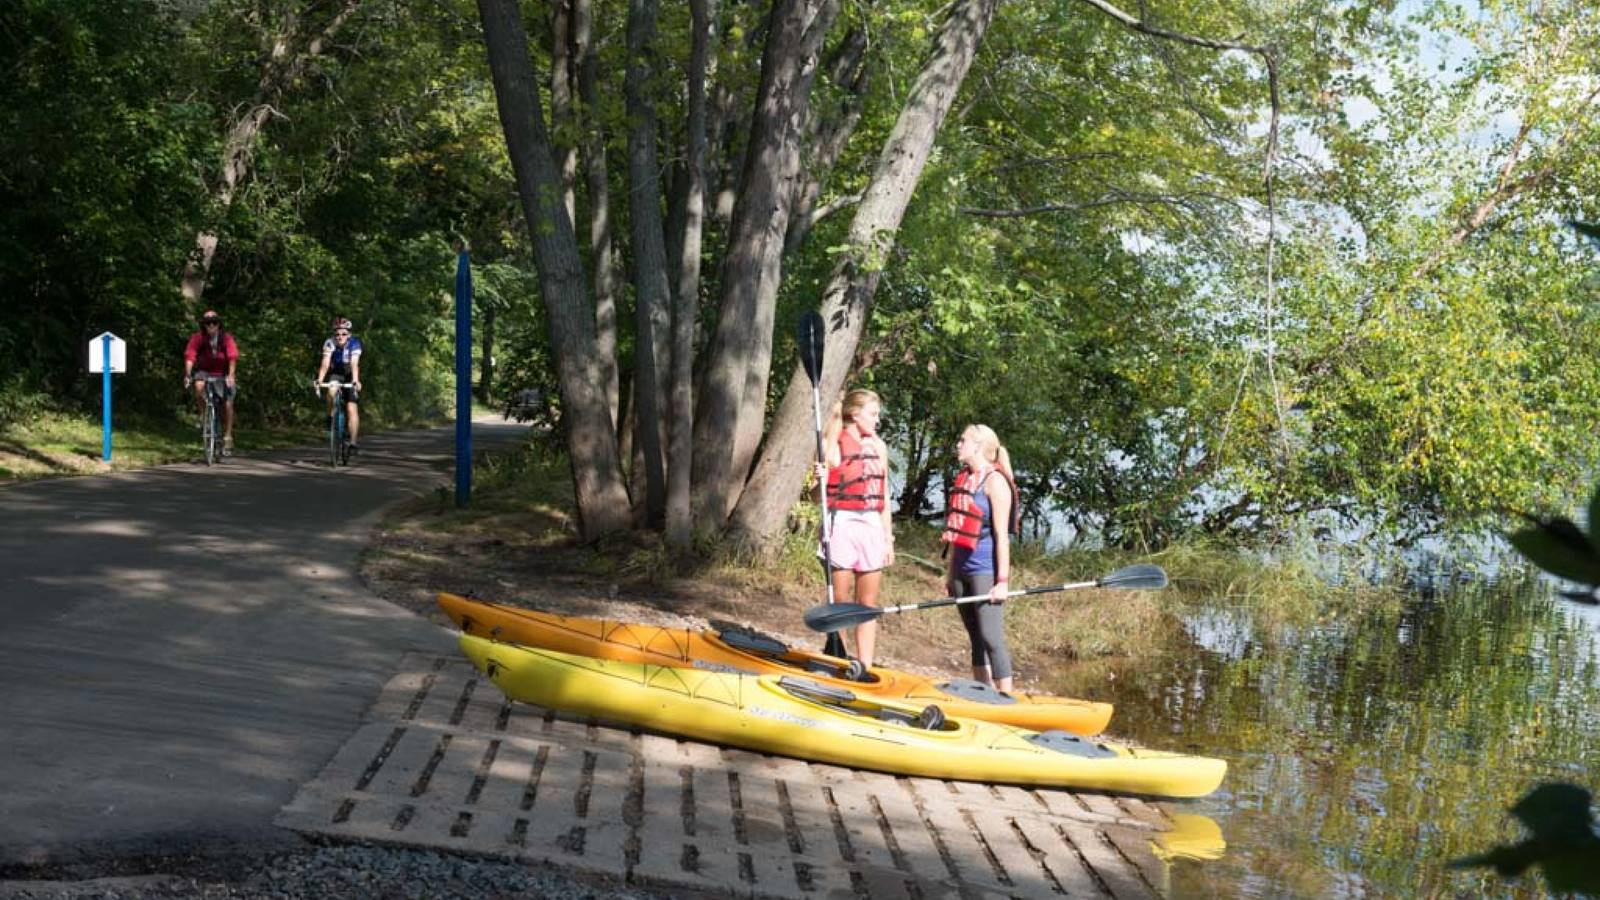 Students using rented kayaks, entering Chippewa River on the bike trail near campus.